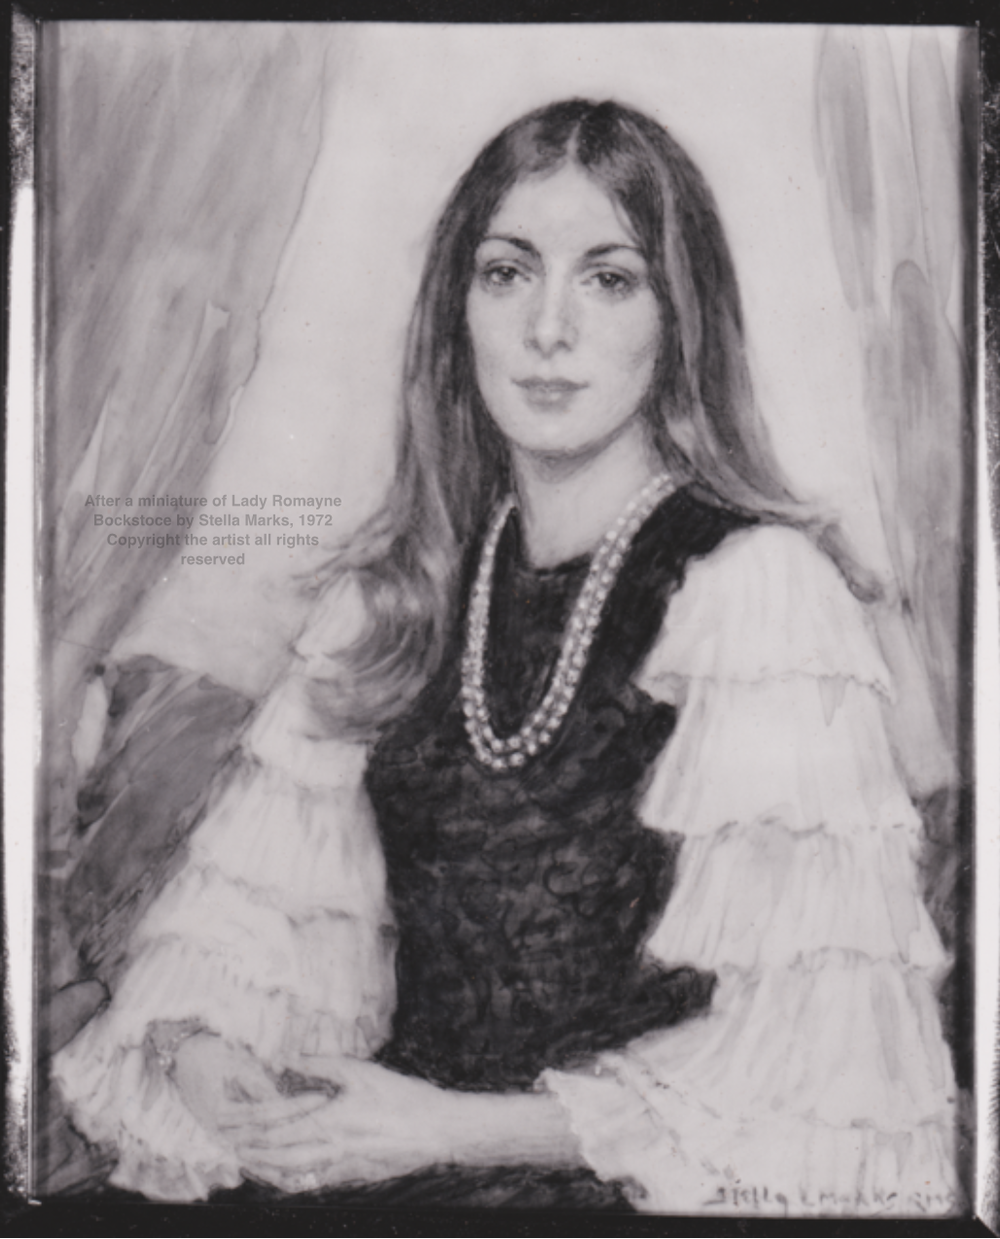 After a miniature of Lady Romayne Bockstoce by Stella Marks, 1972 Copyright the artist all rights reserved